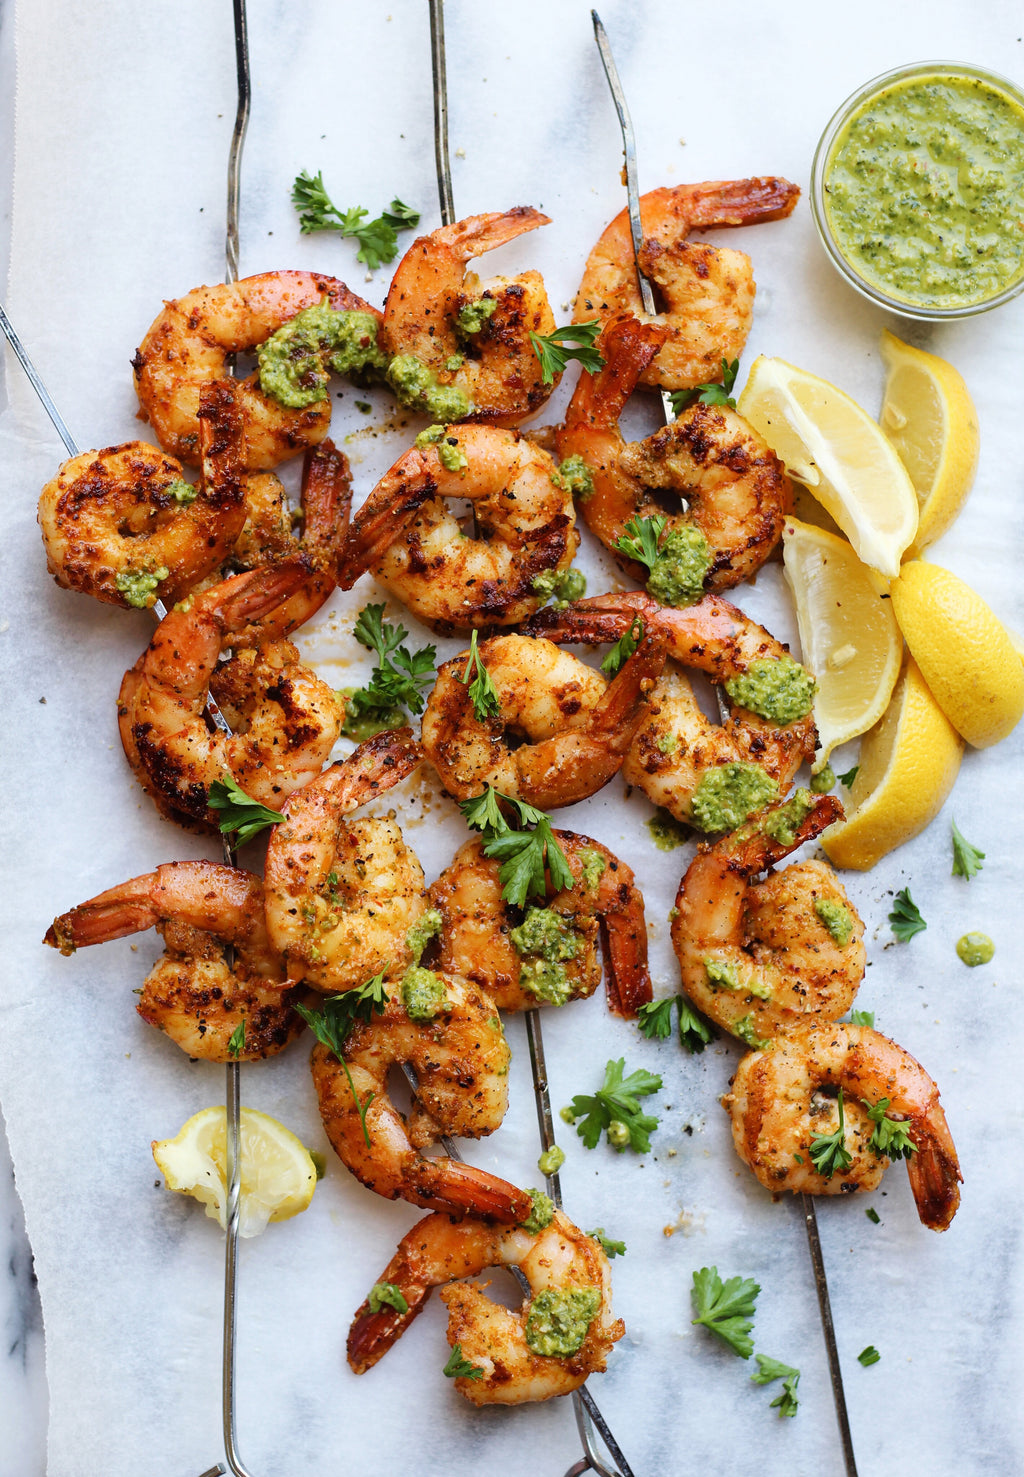 Shrimp Skewers with Peanut Pesto